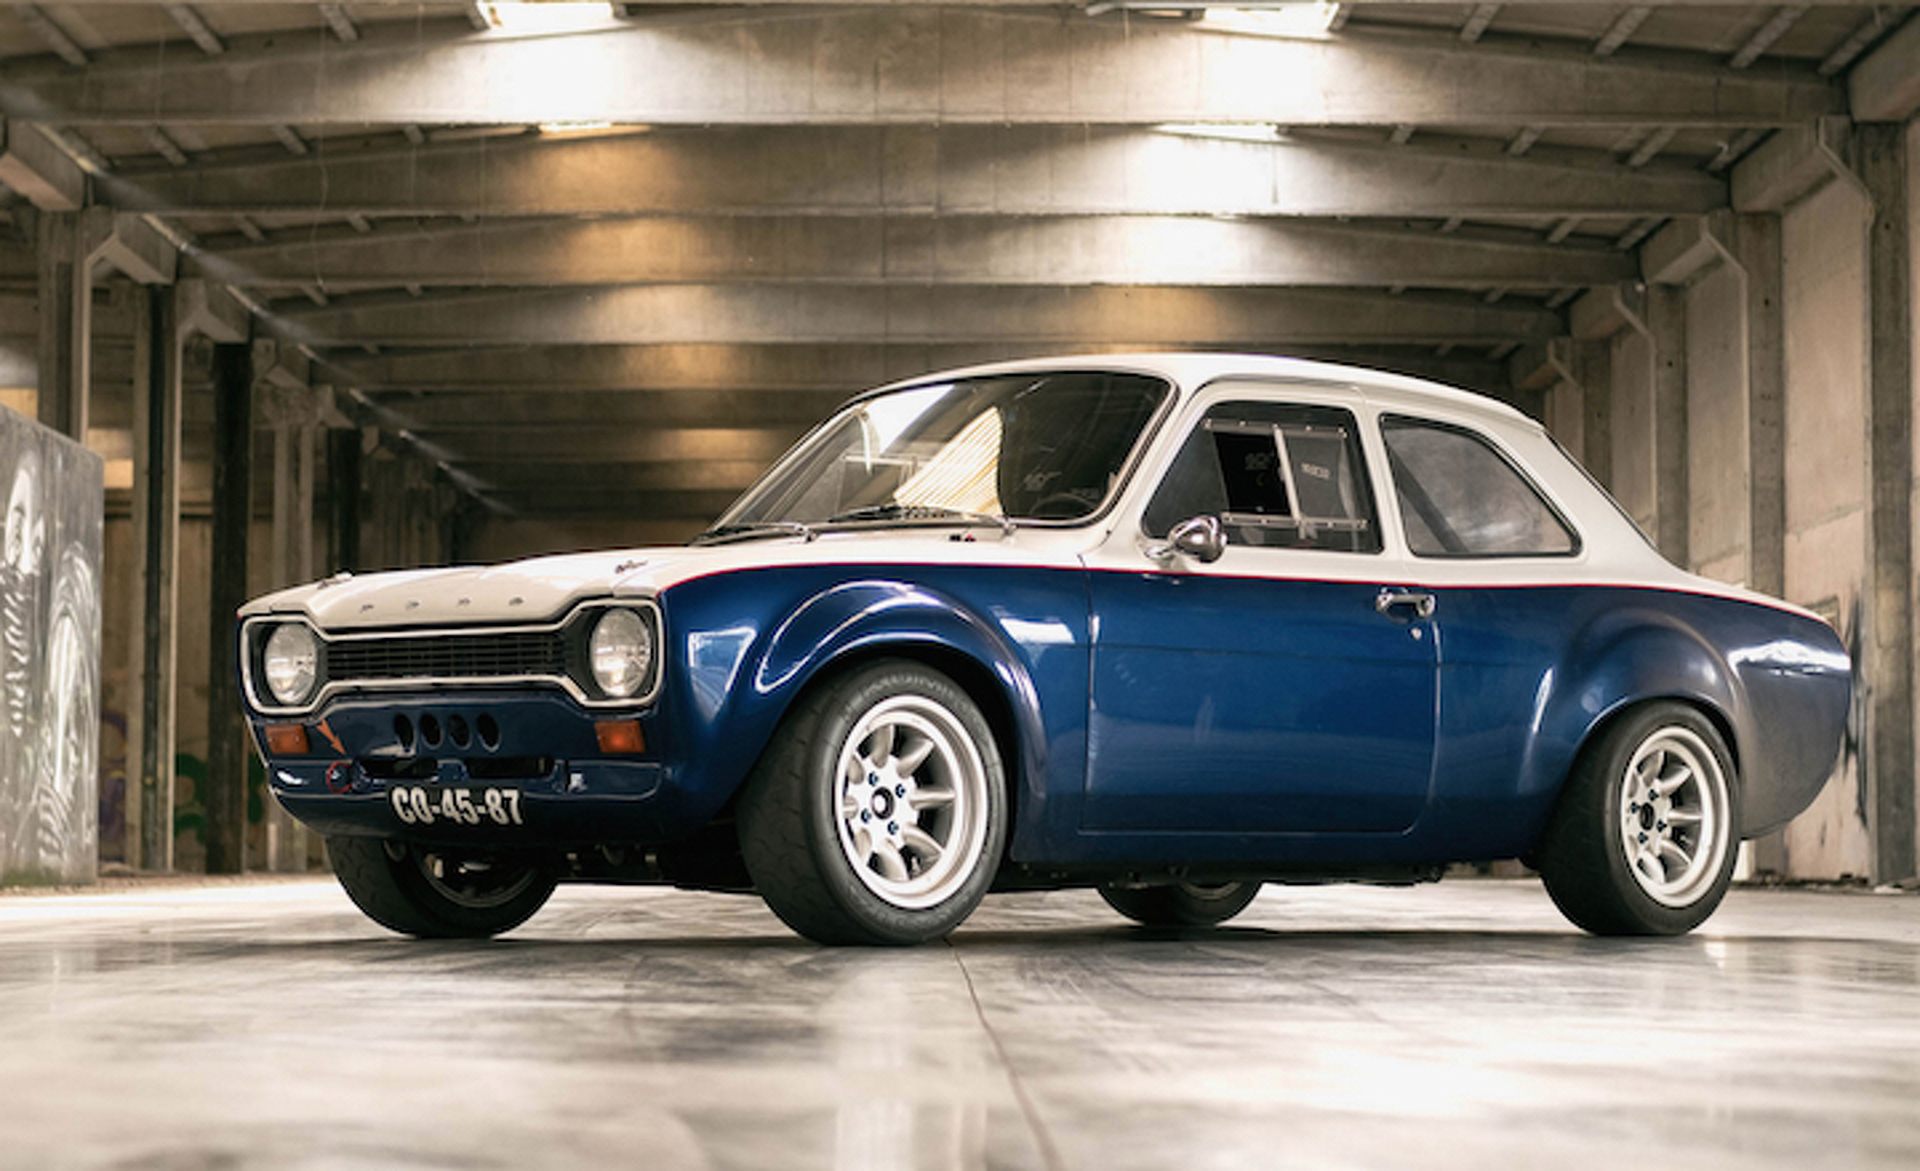 1974 Ford Escort MK1 Restored To Its Former Glory; Promptly Does Donuts